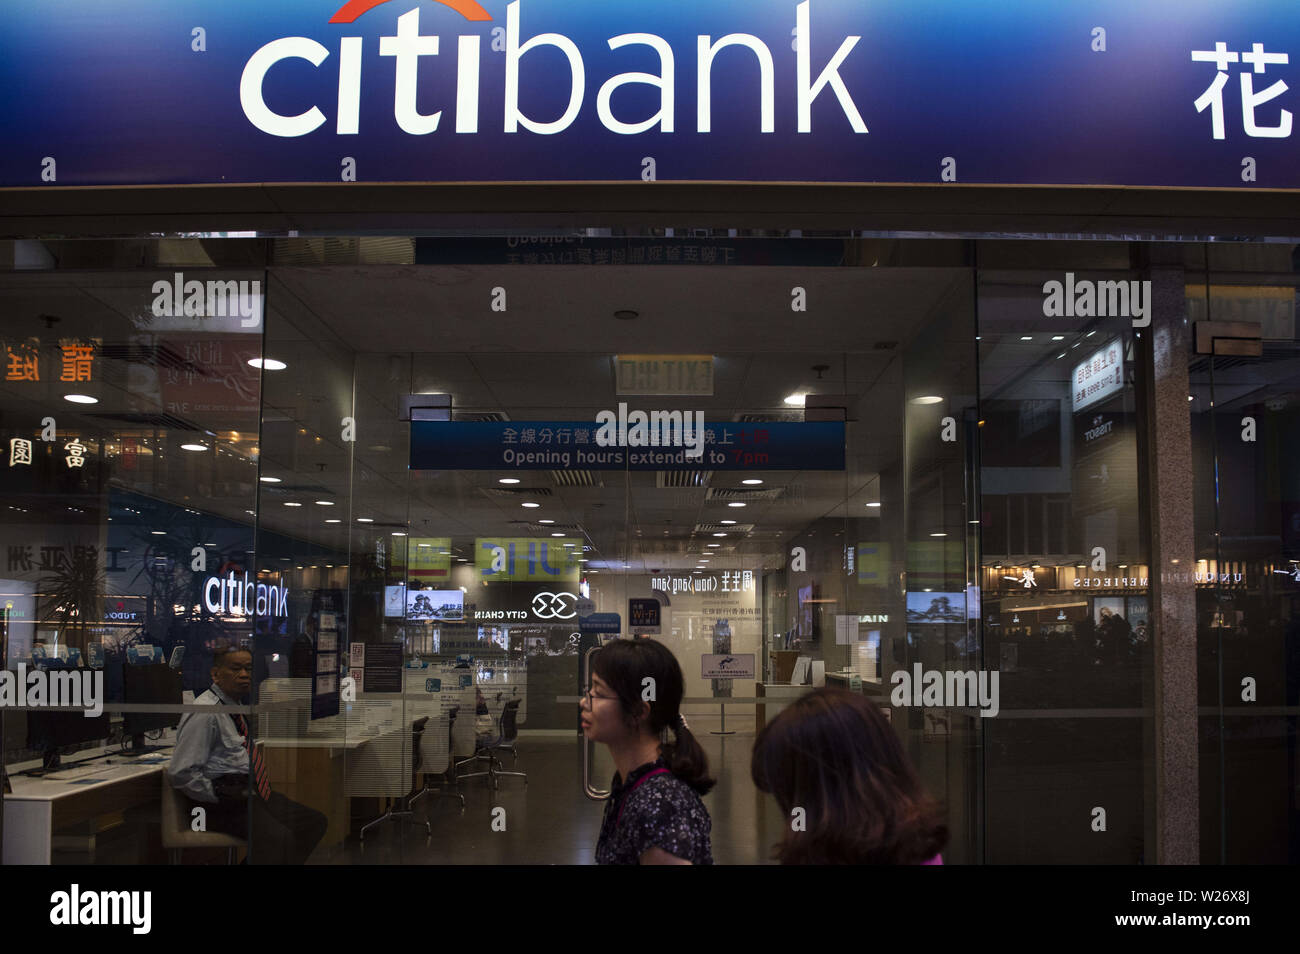 Hong Kong, China. 17th May, 2019. Pedestrians pass by an American multinational investment bank and financial services corporation Citibank or Citi branch in Hong Kong. Credit: Budrul Chukrut/SOPA Images/ZUMA Wire/Alamy Live News - Stock Image